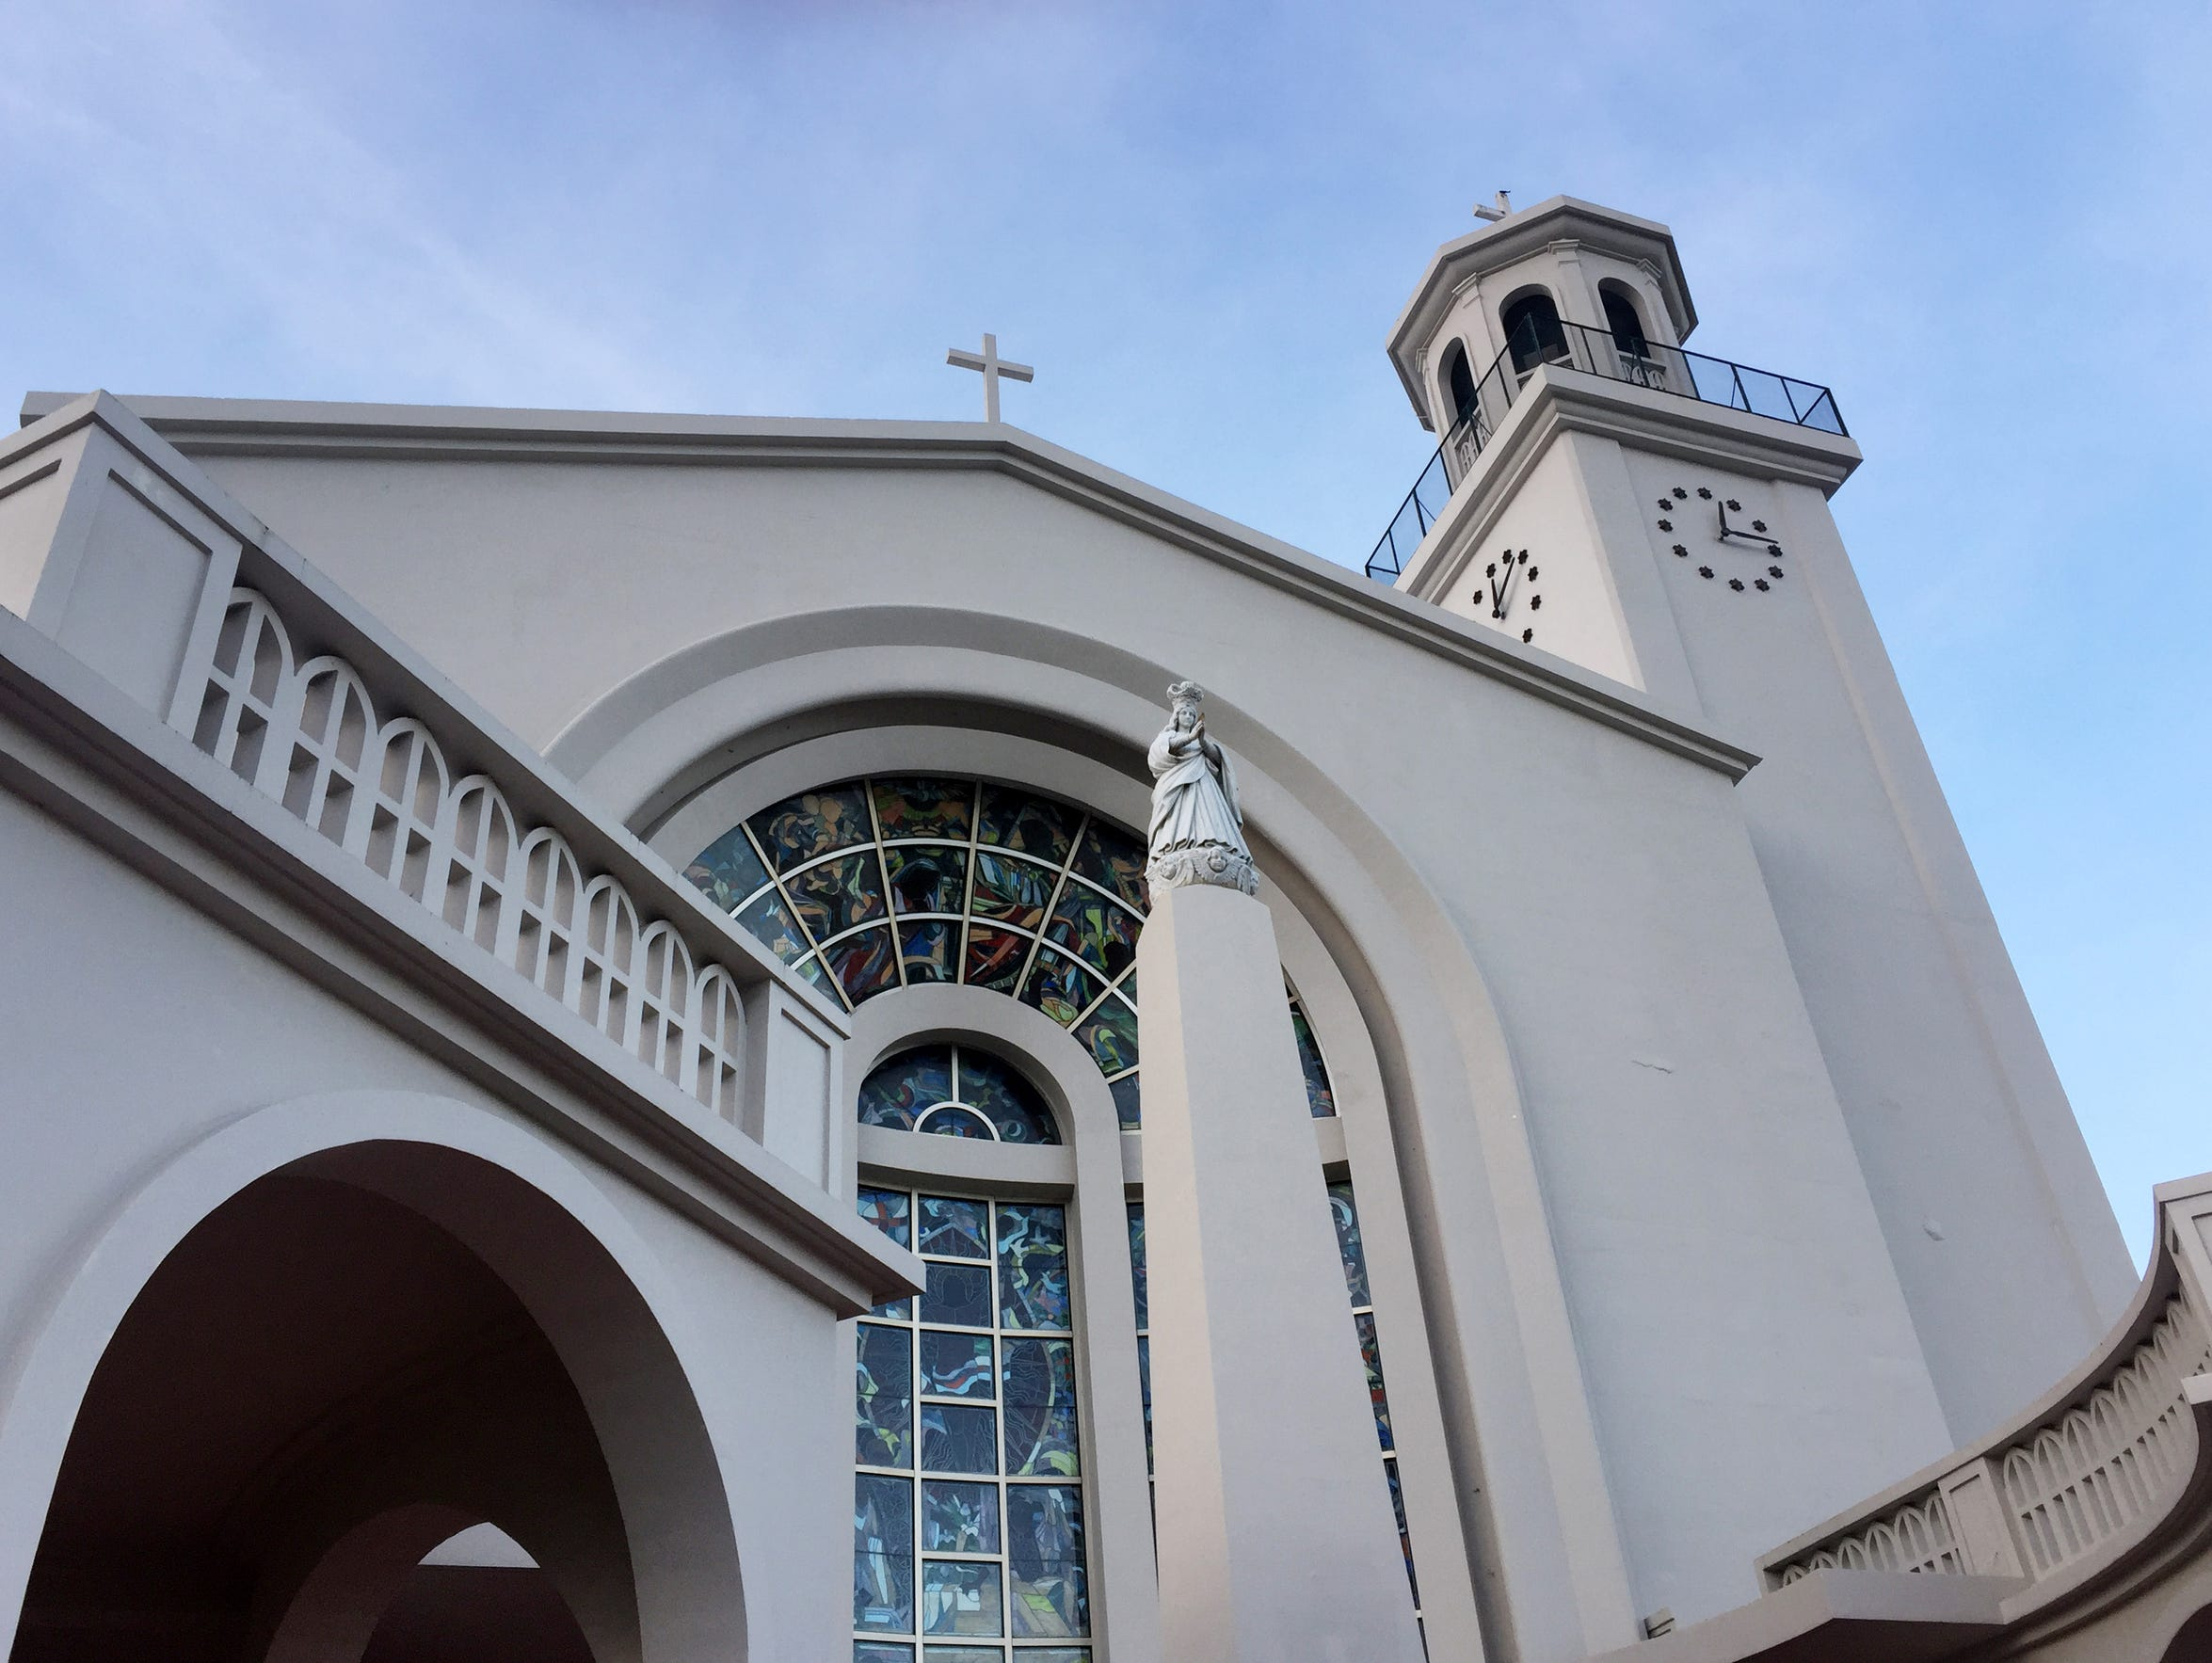 The Dulce Nombre de Maria Cathedral-Basilica in Hagåtña